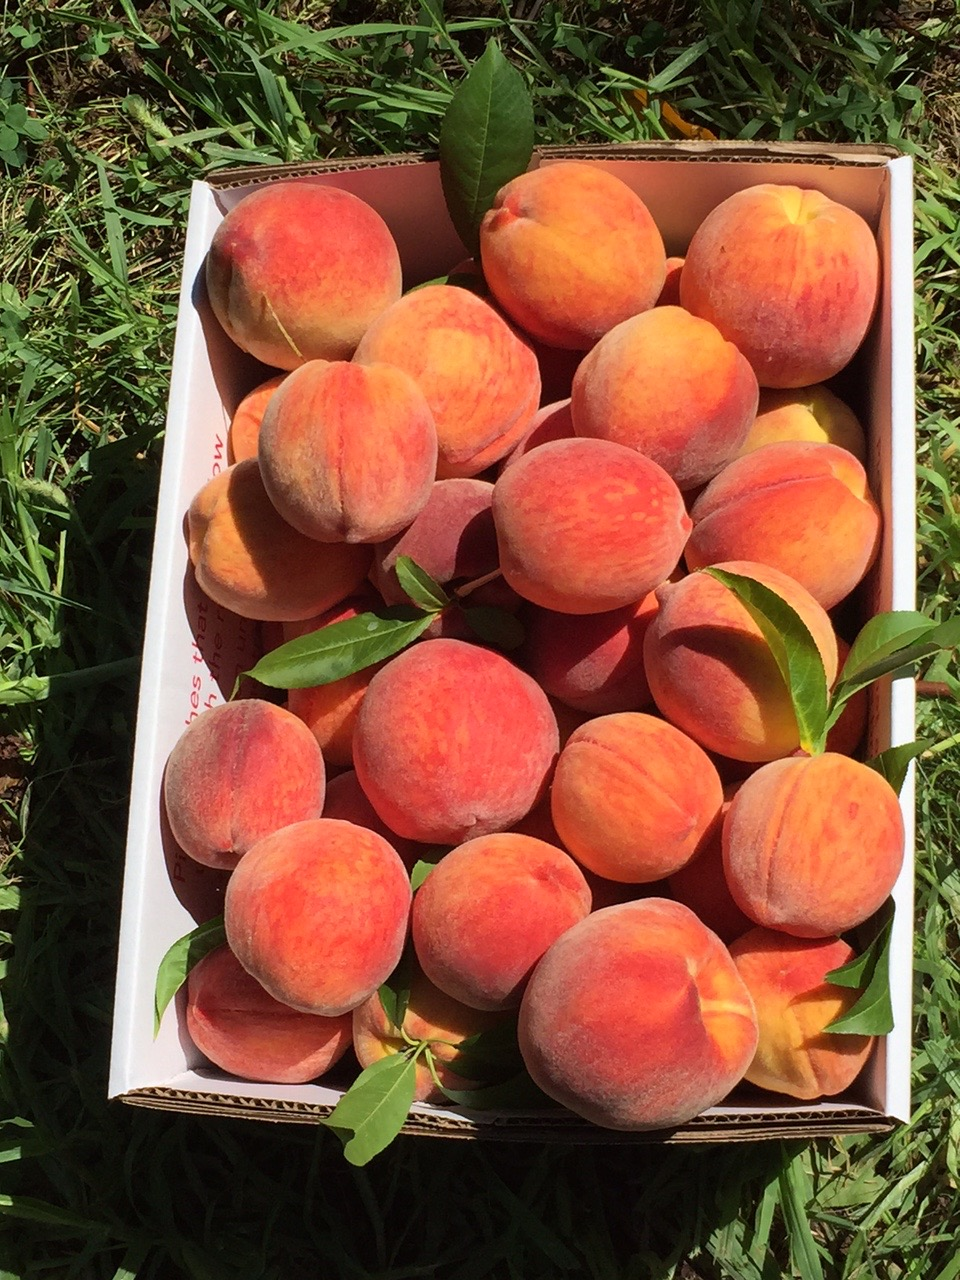 Peaches! #nofilter